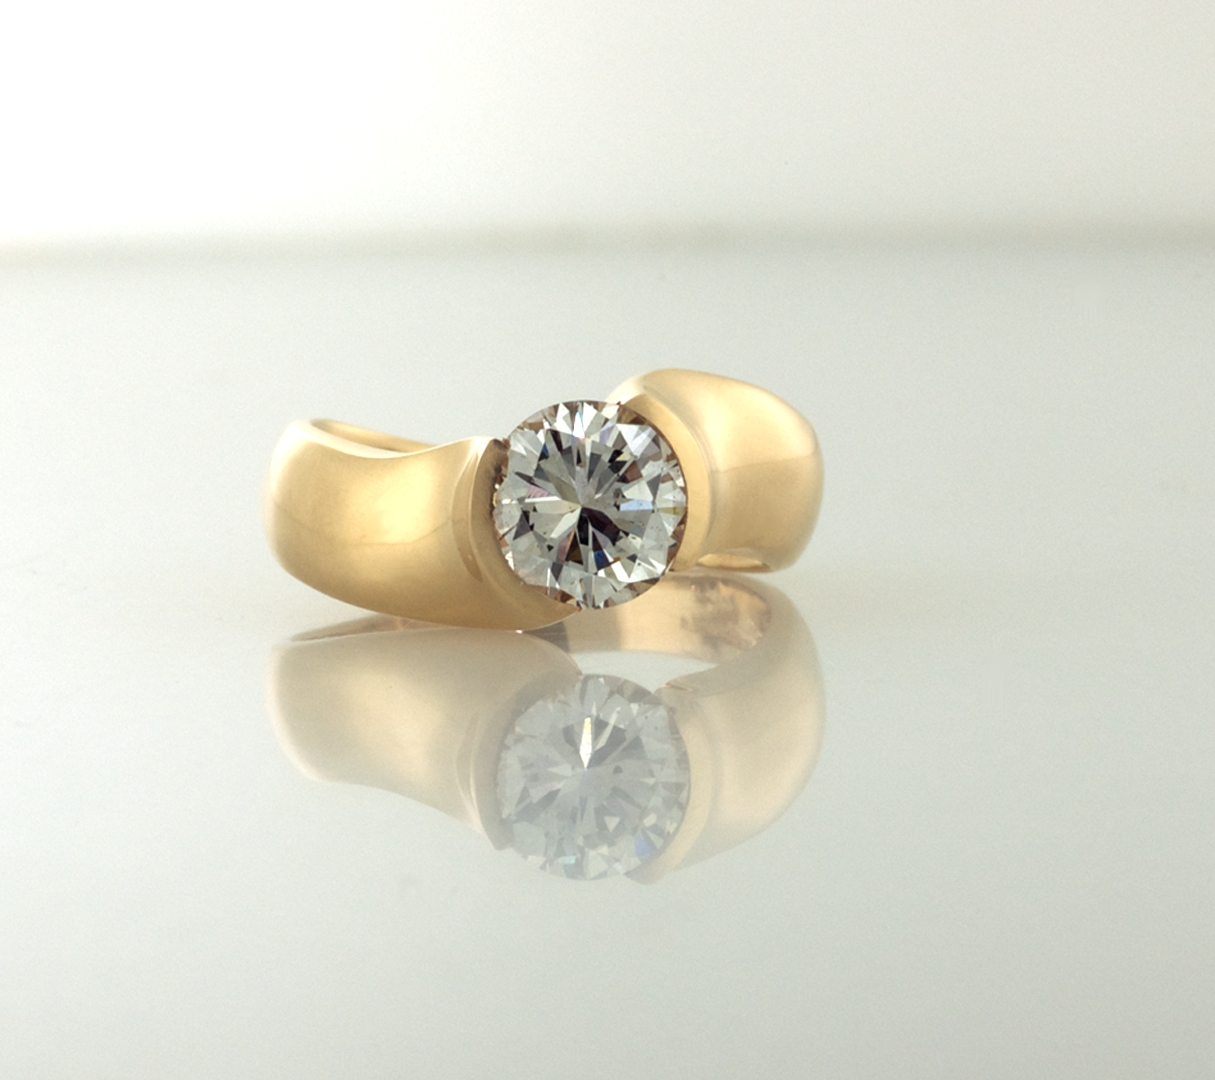 Diamond And Gold Solitaire Modern Ring R2055 | Signature Solitaire Within Most Recently Released Modern Anniversary Rings (Gallery 7 of 25)